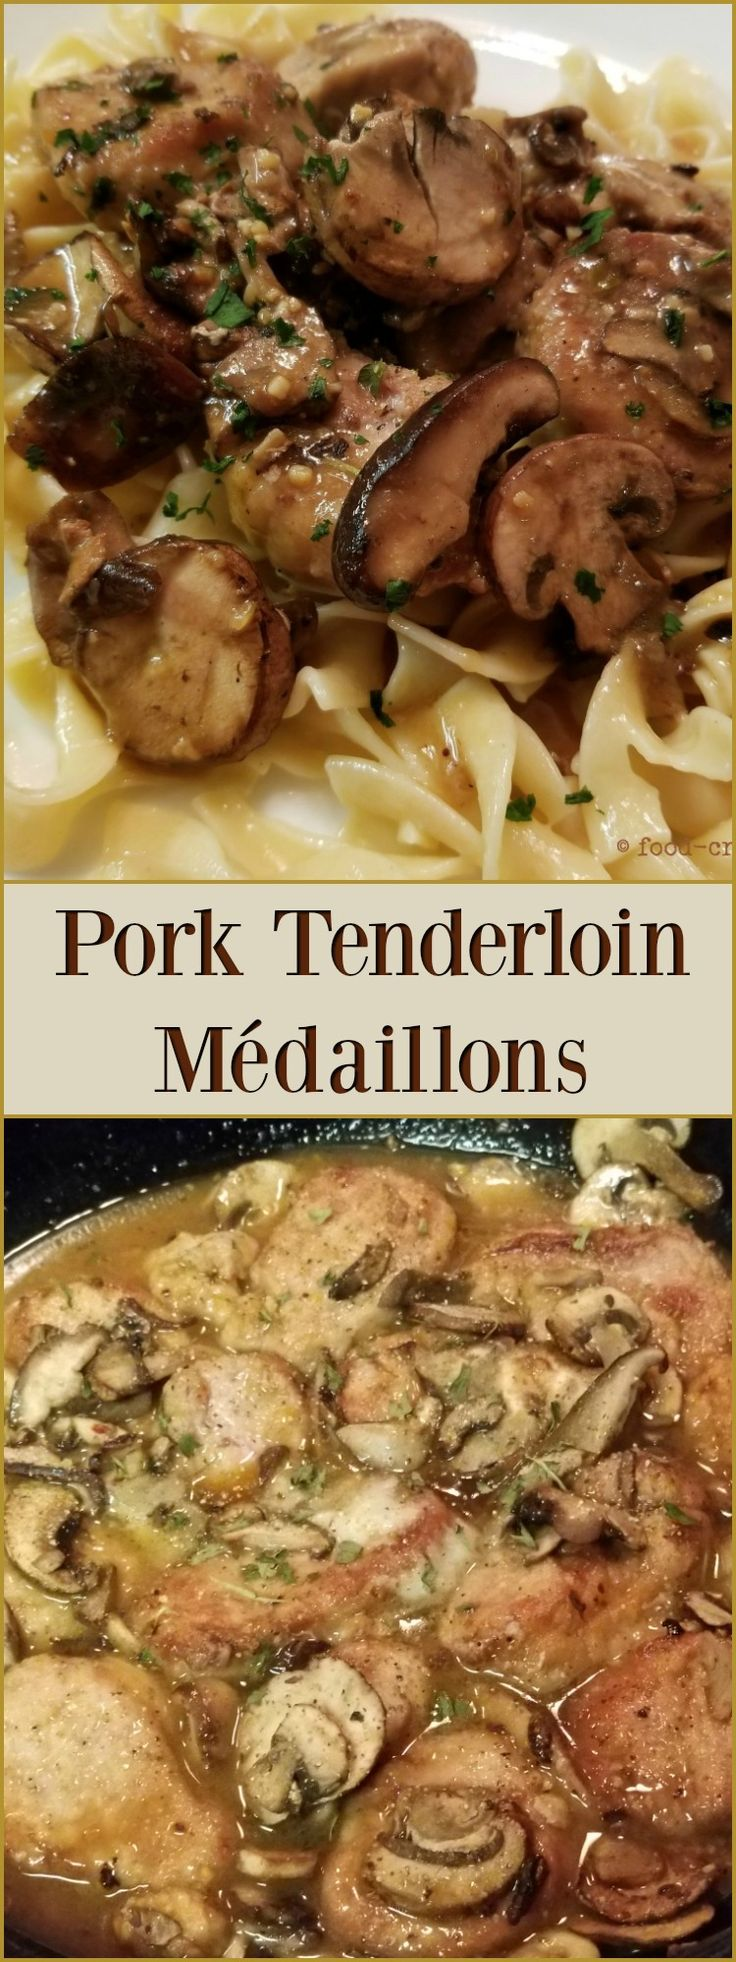 Pork Tenderloin Medaillons - Truly a quick and easy way to prepare a pork tenderloin dinner. Seared tender morsels of pork covered with sautéed mushroom medley and coated with a thick garlic sauce. Over buttered noodles.